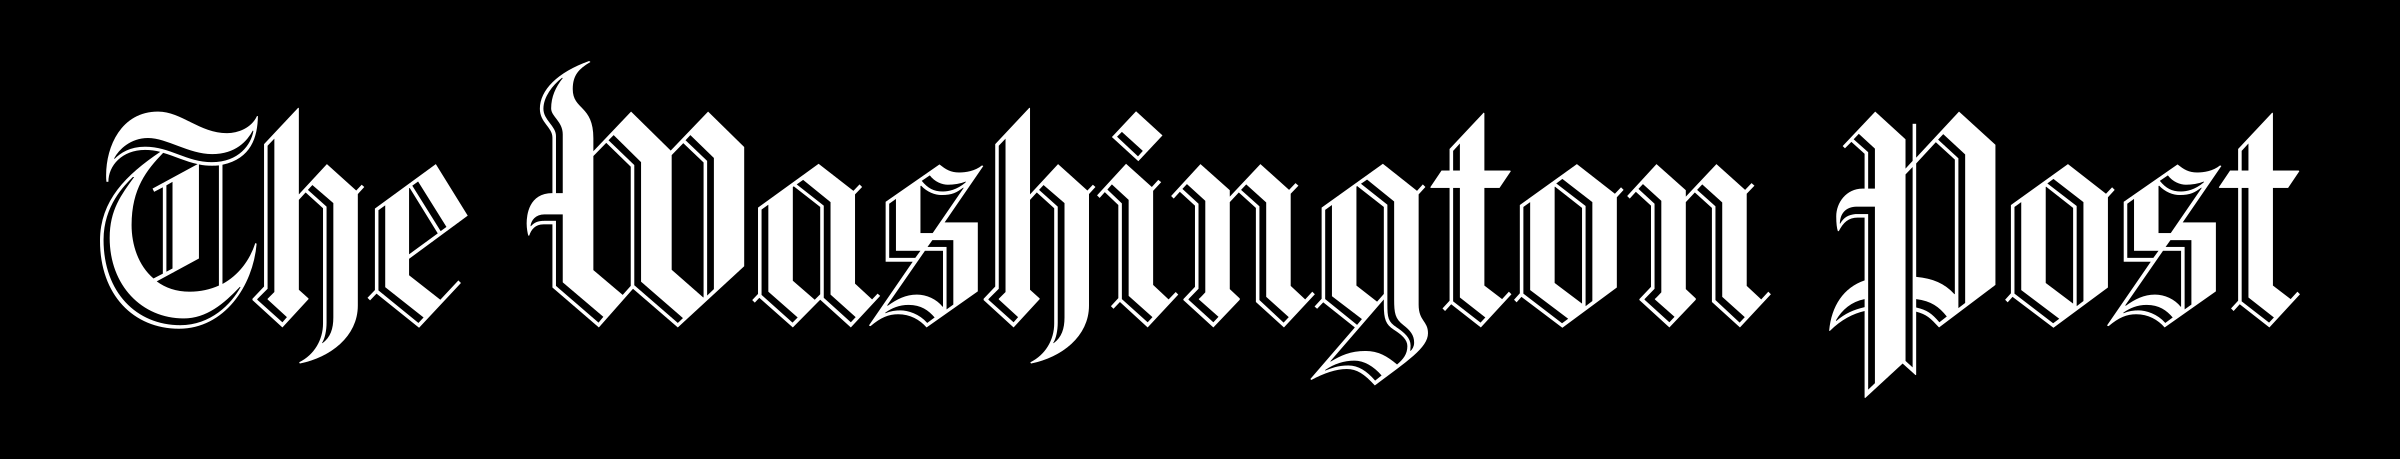 washington-post-logo-white.png?mtime=20180813150256#asset:21268